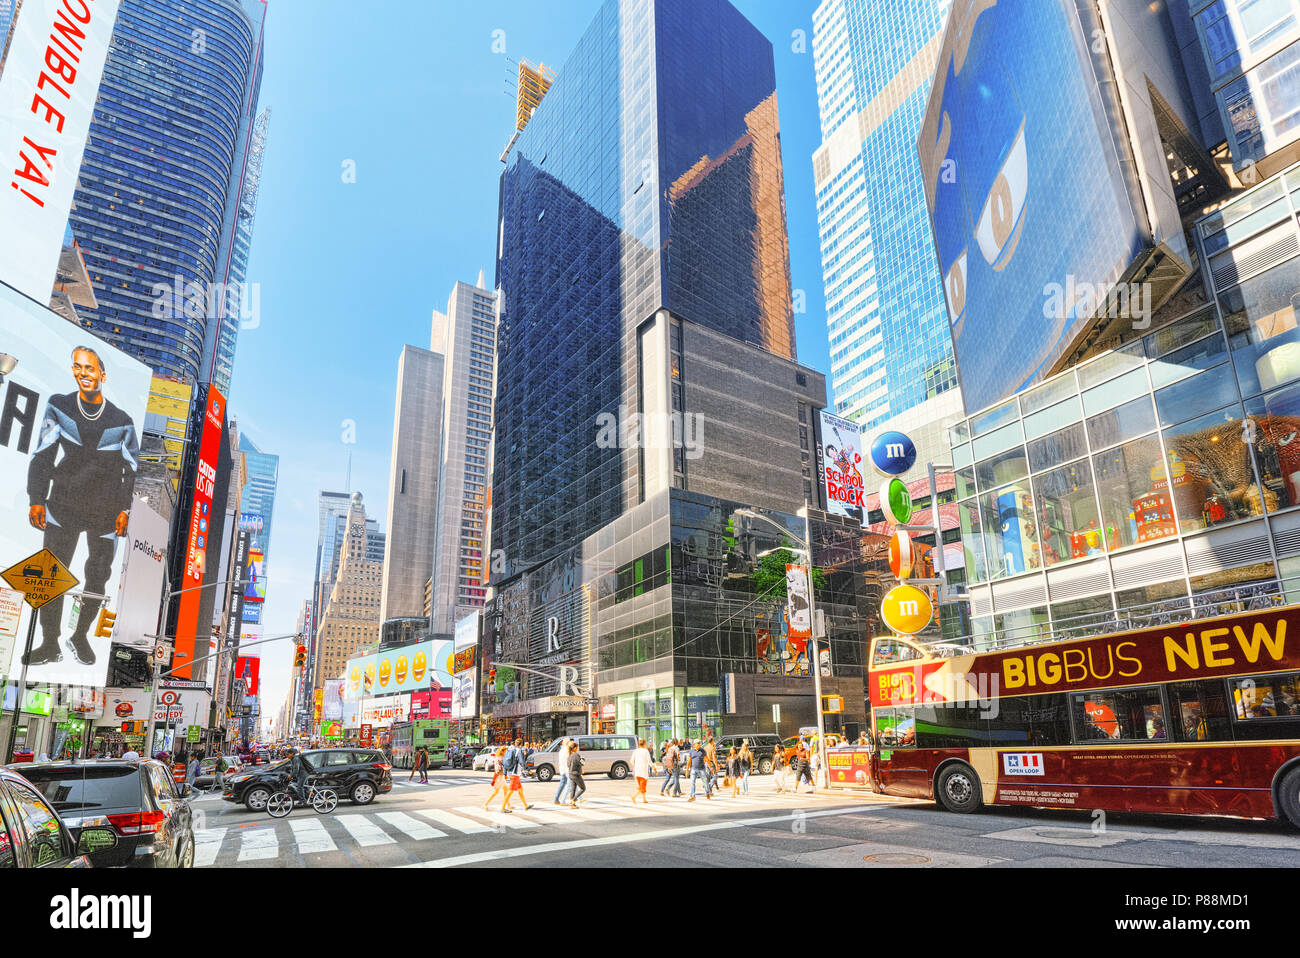 New York, USA- August 14, 2017 : 7 th Avenue and  Candy Store M&M's in  New York near Times Square.Street, cars, people and tourists on it. - Stock Image